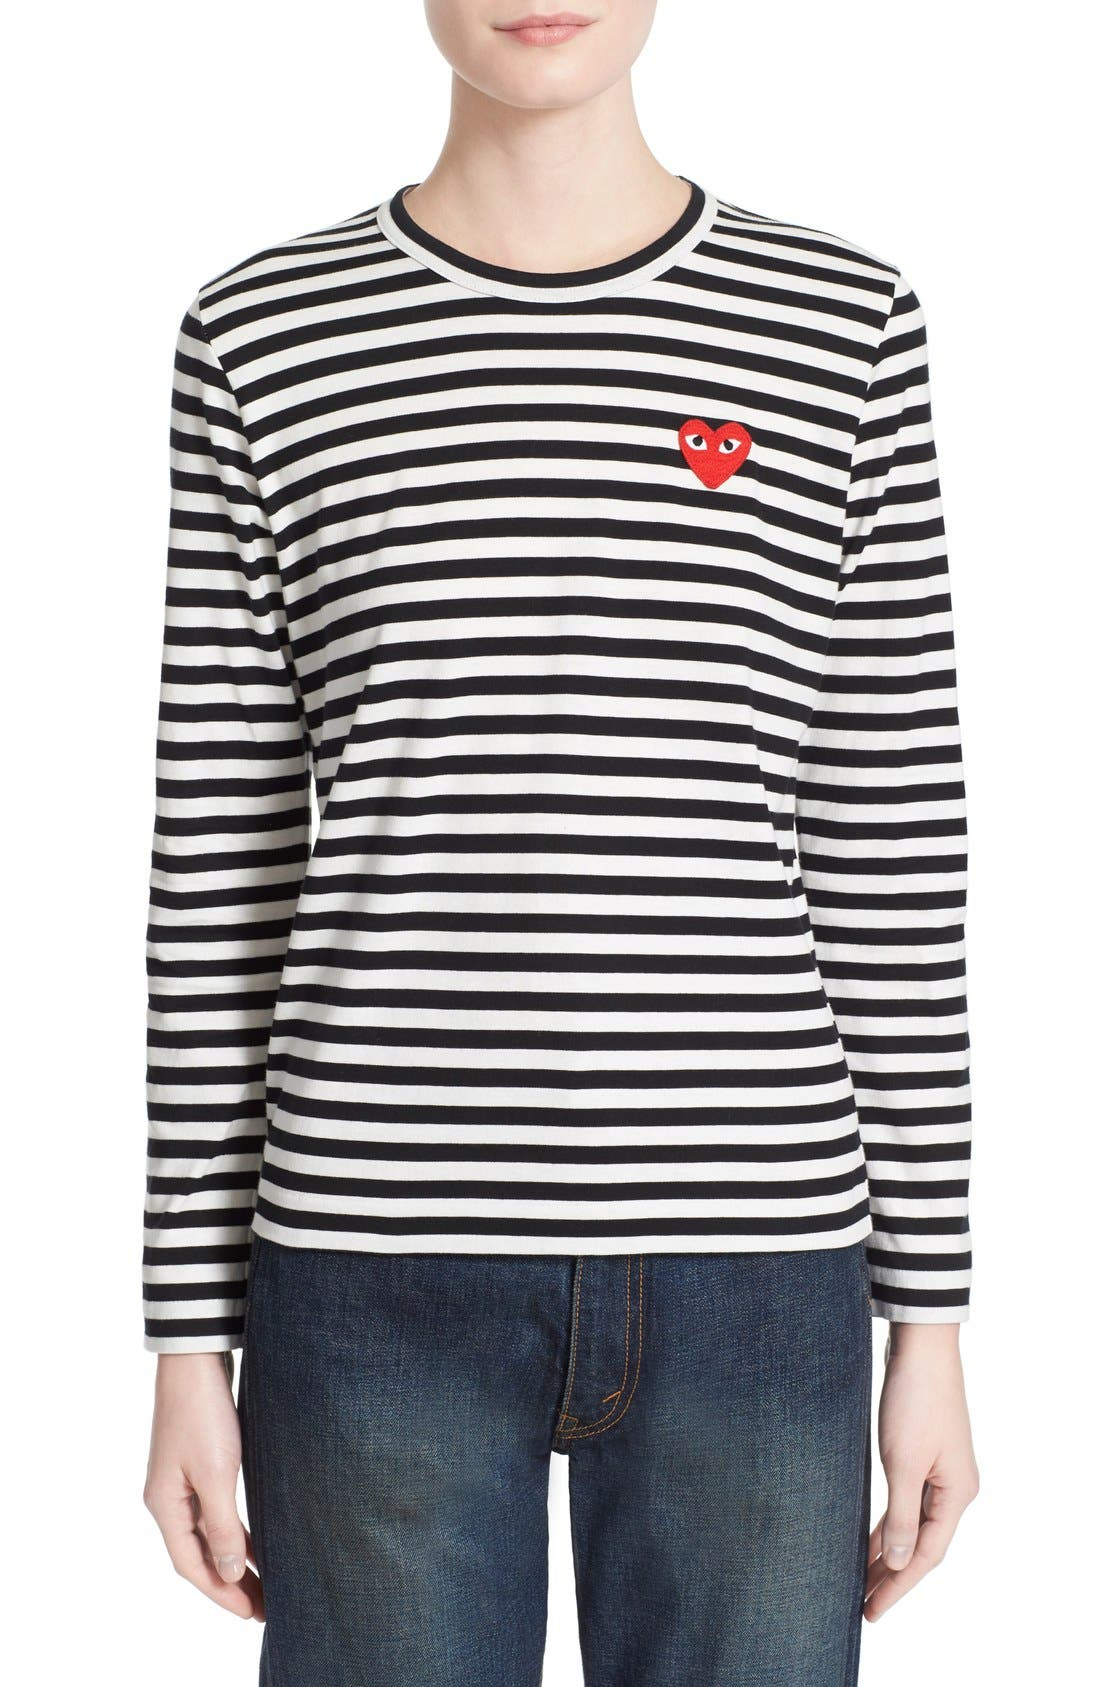 'Play' Stripe Cotton Tee,                         Main,                         color, Black/ White